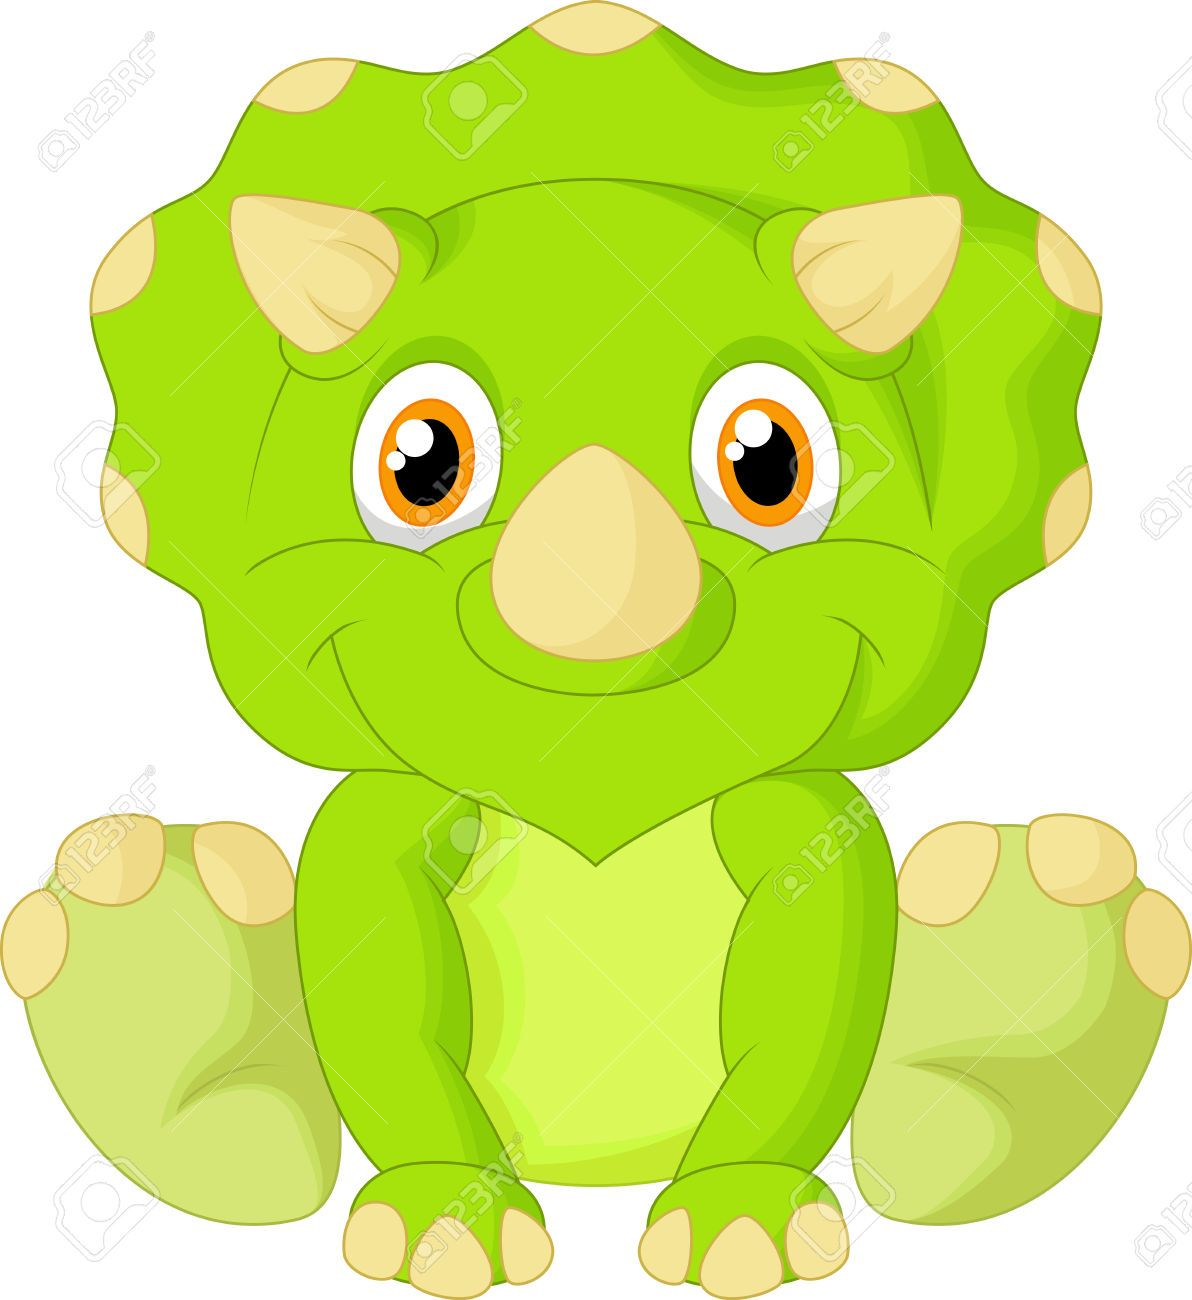 Cute Triceratops Cartoon Royalty Free Cliparts, Vectors, And Stock ...